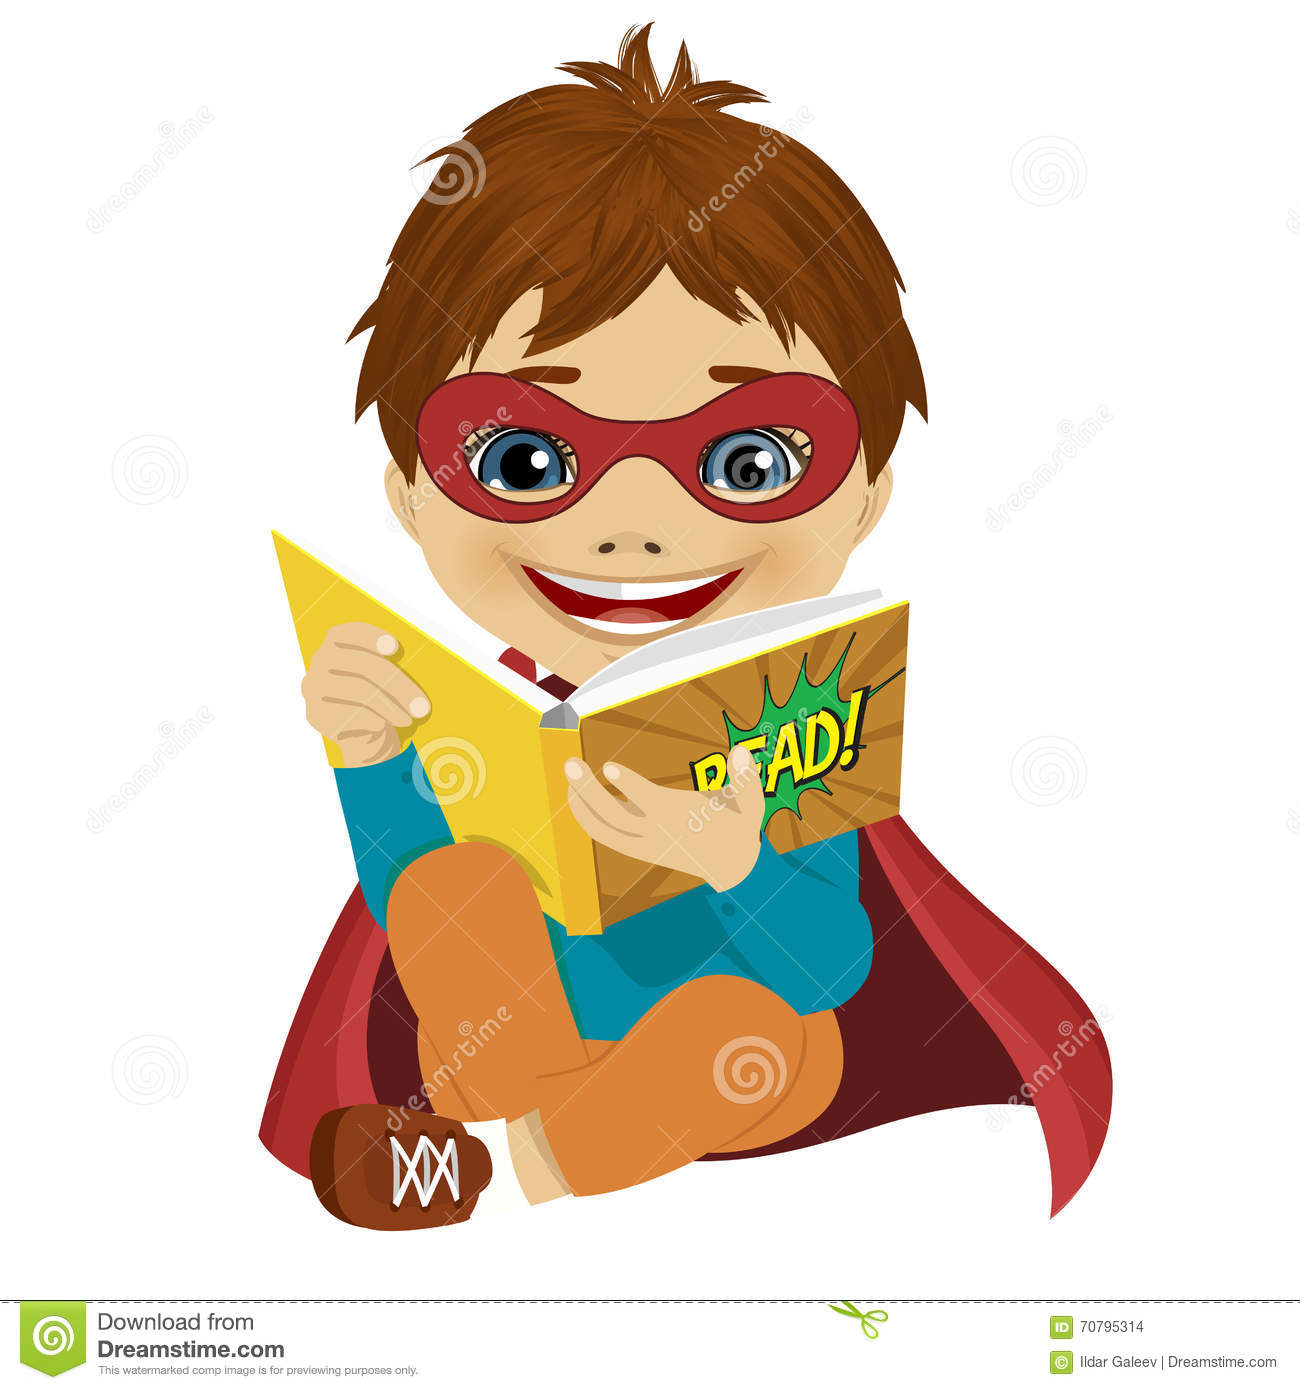 ... Illustration: Little boy dressed as a superhero reading a comic book